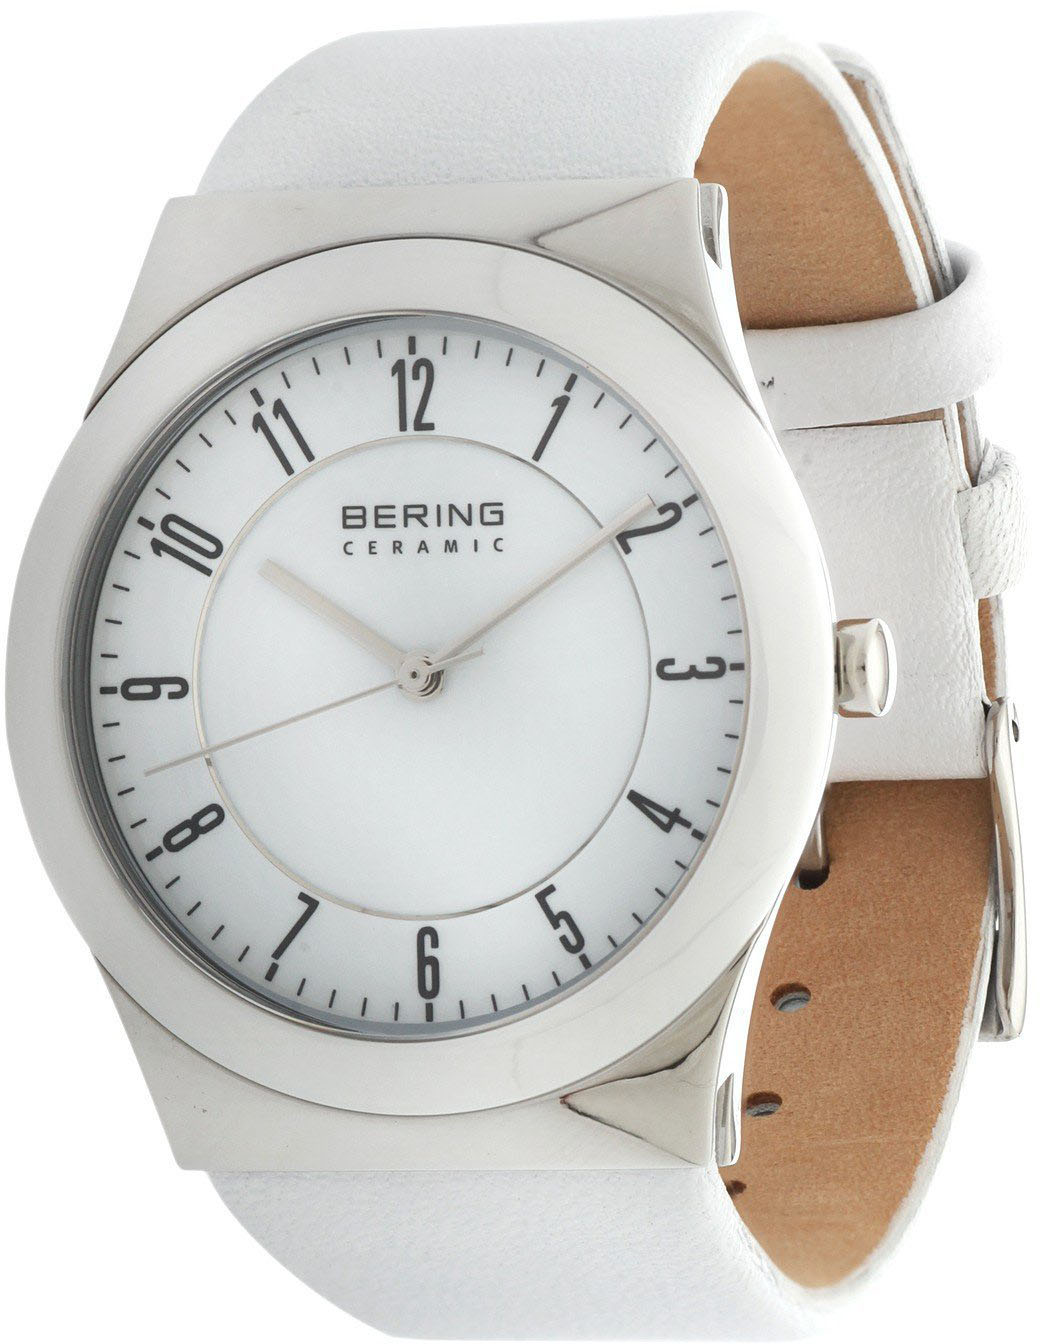 Bering Ceramic 32235-000 a975got tbd b